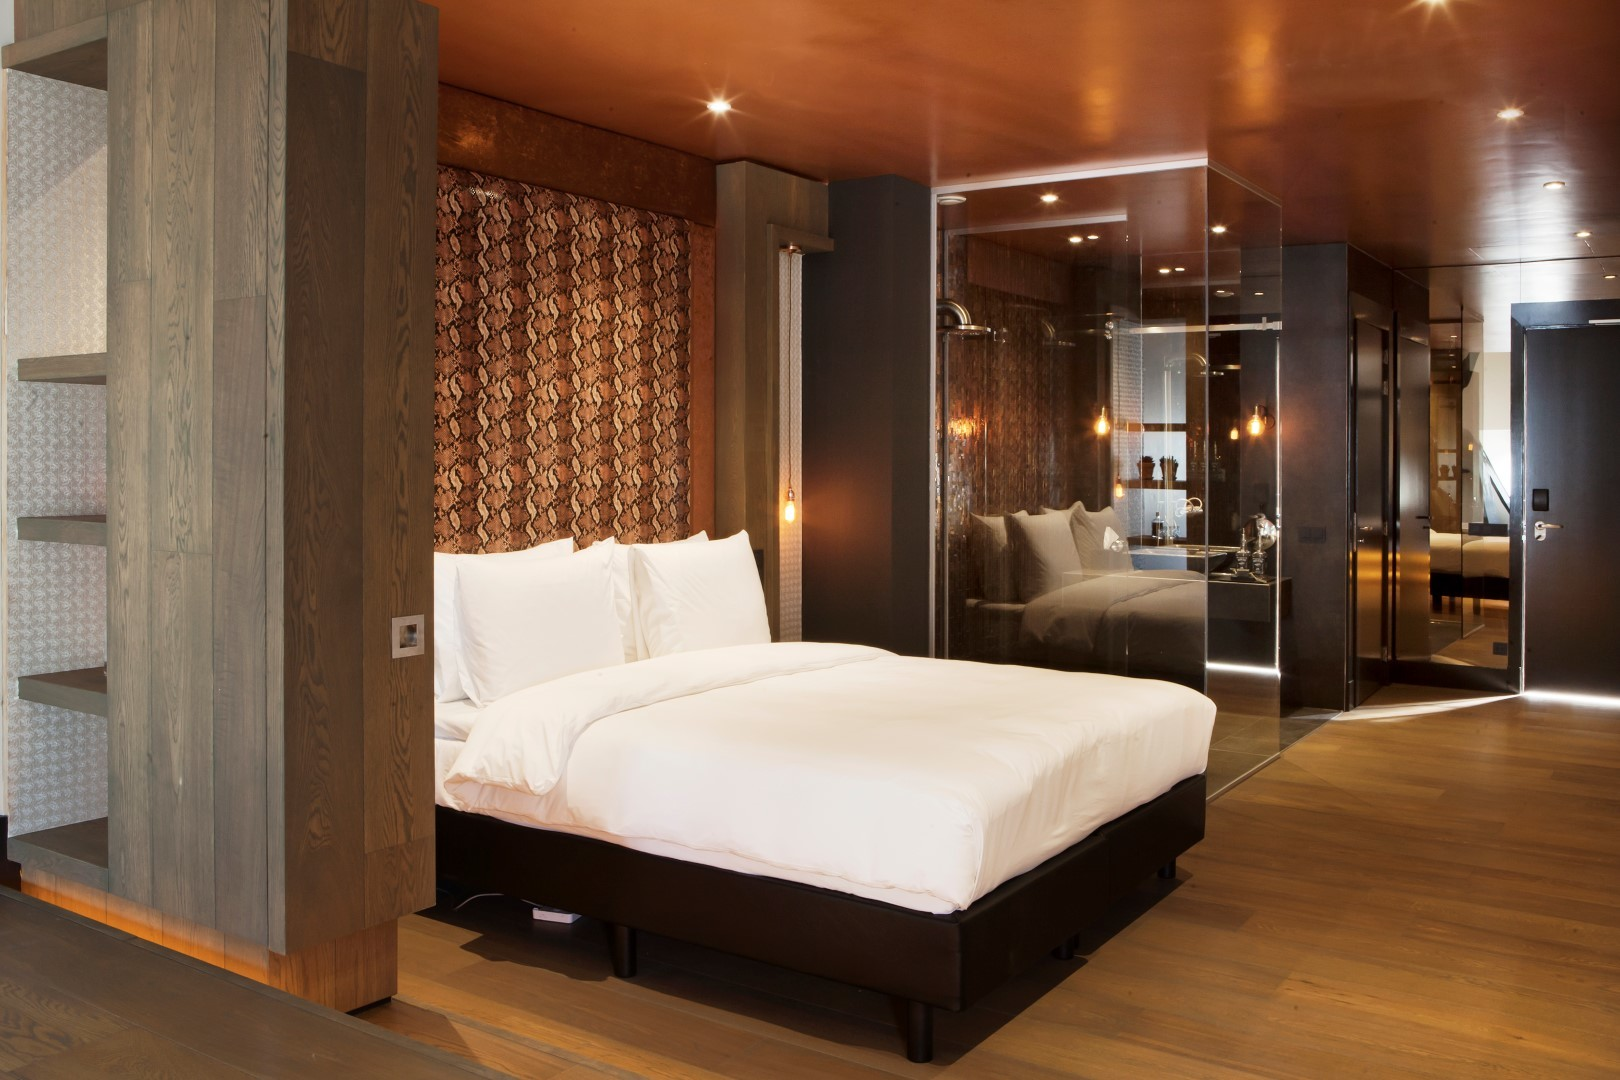 COMFORT AND LUXURY AWAY FROM HOME